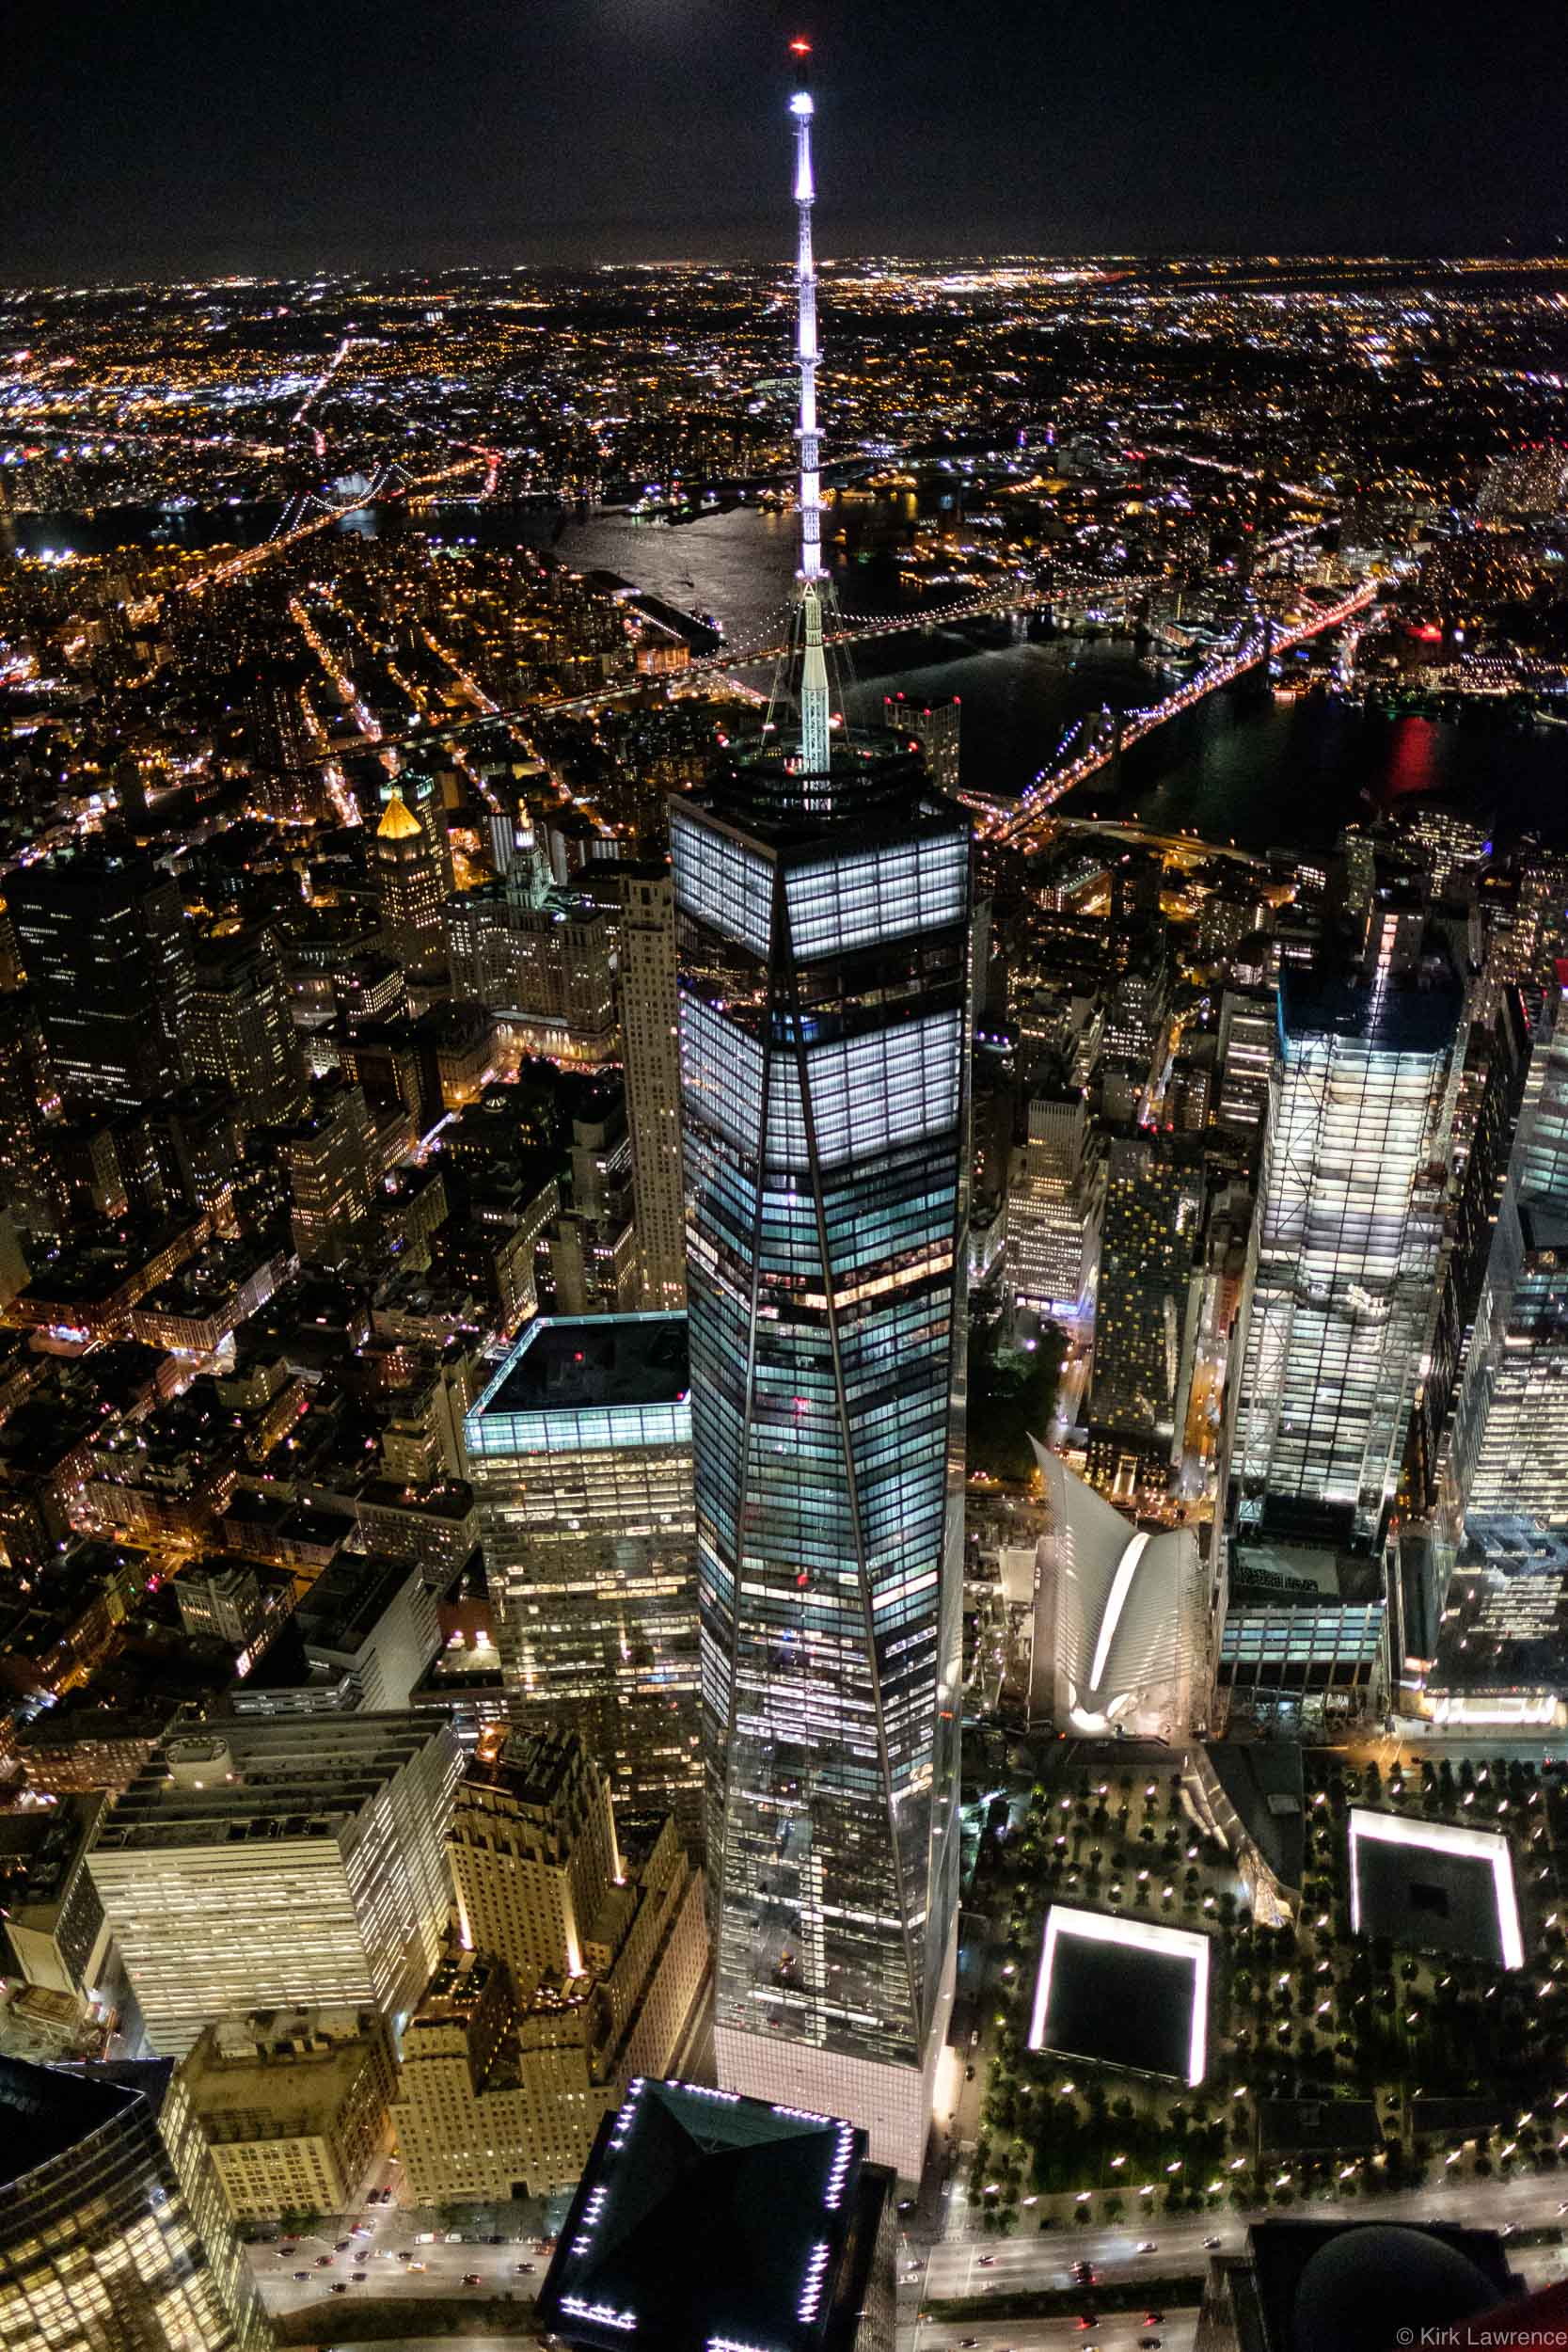 helicopter_view_Manhattan_World_Trade_Center_nighttime.jpg